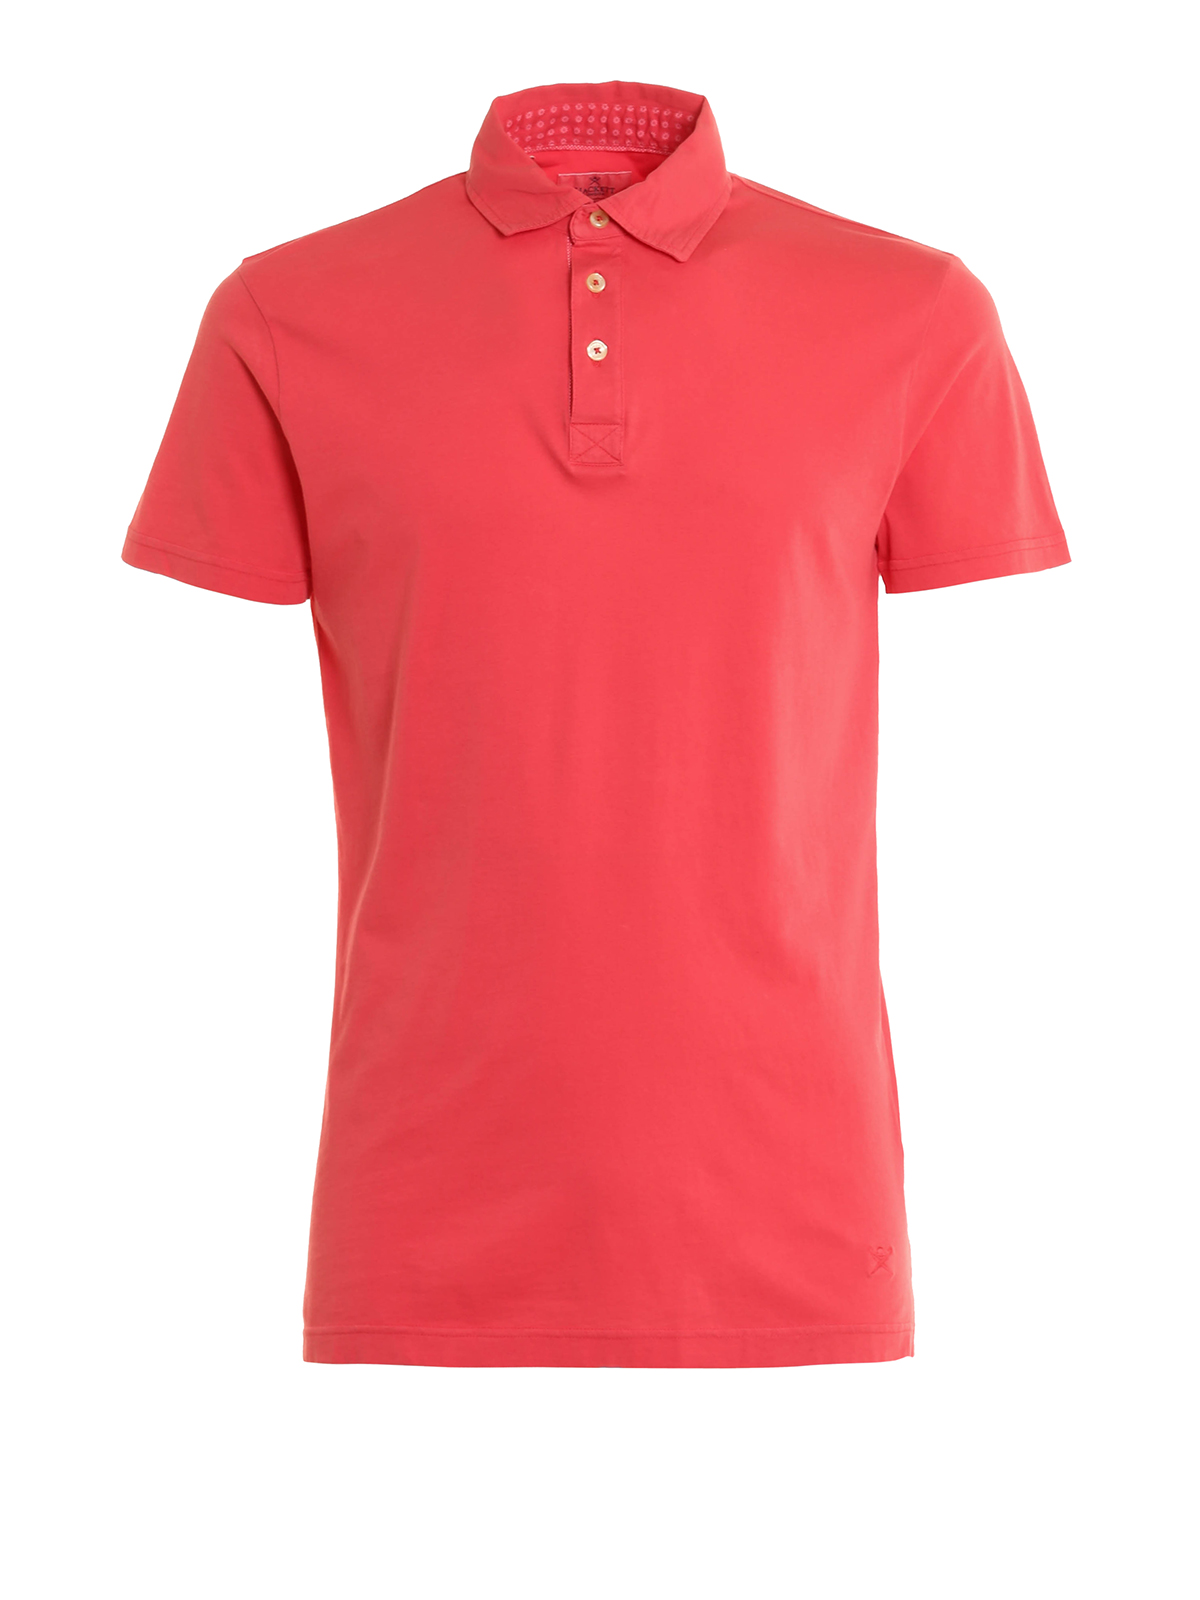 Cotton jersey polo shirt by hackett polo shirts ikrix for Cotton polo shirts for men